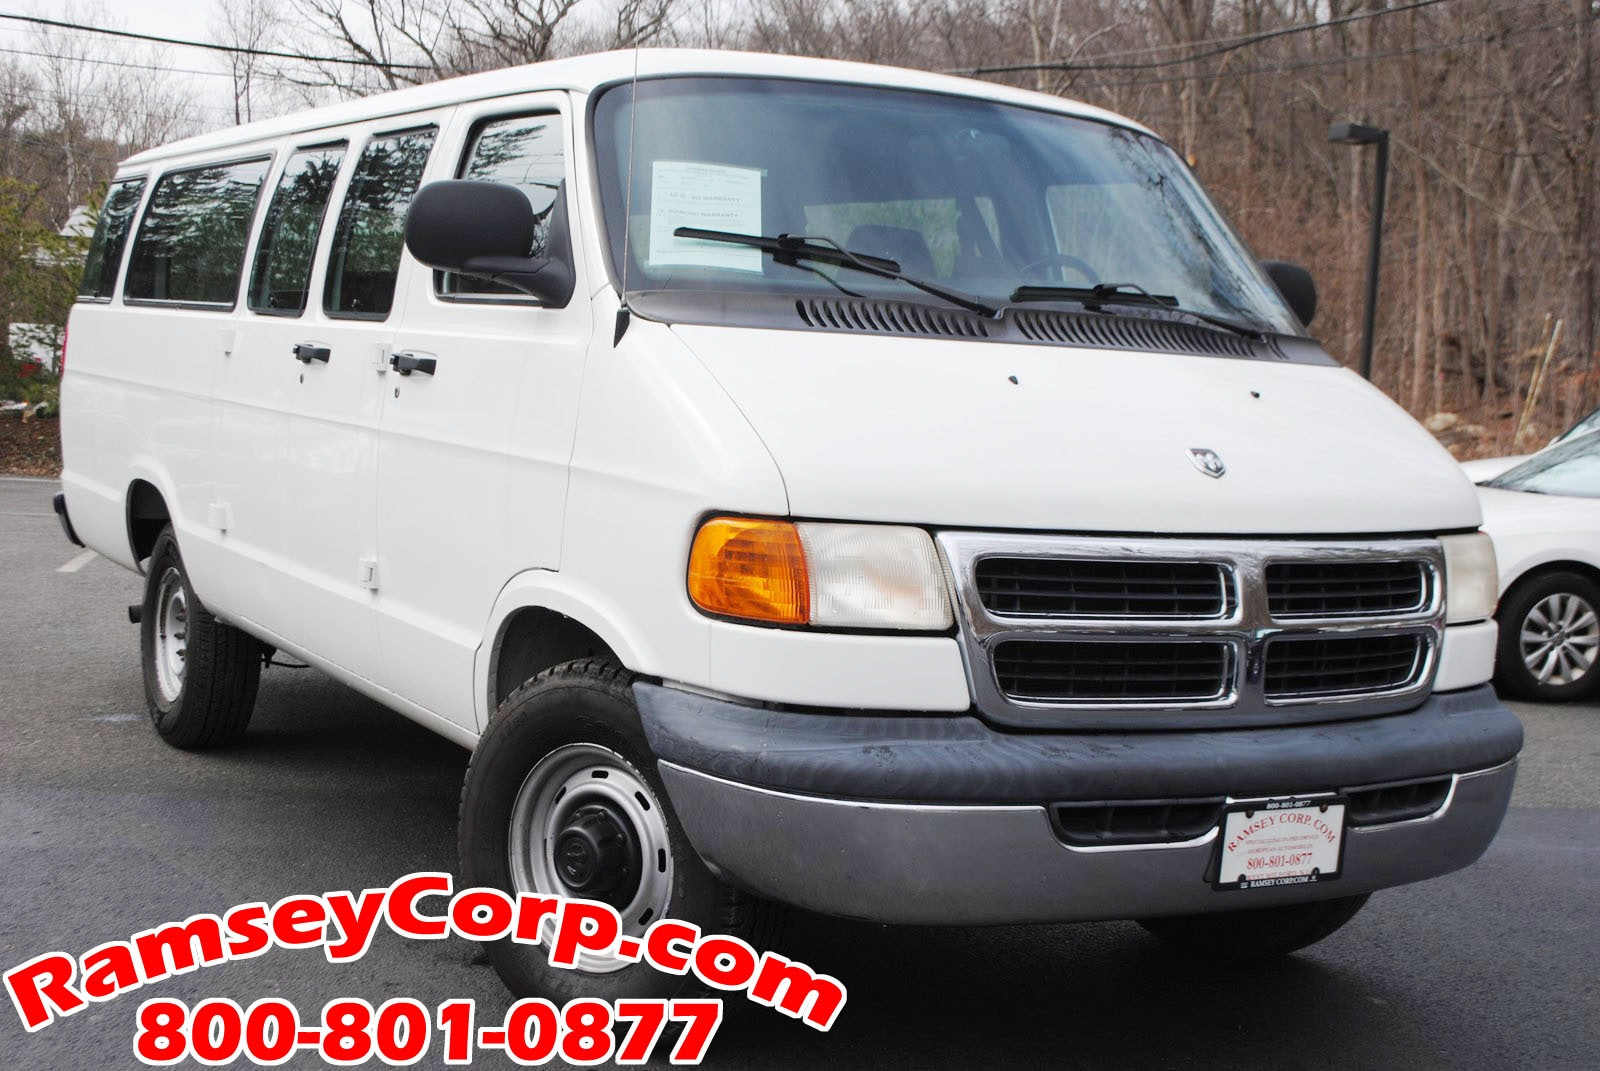 Used 2002 Dodge Ram Wagon 3500 For Sale at Ramsey Corp